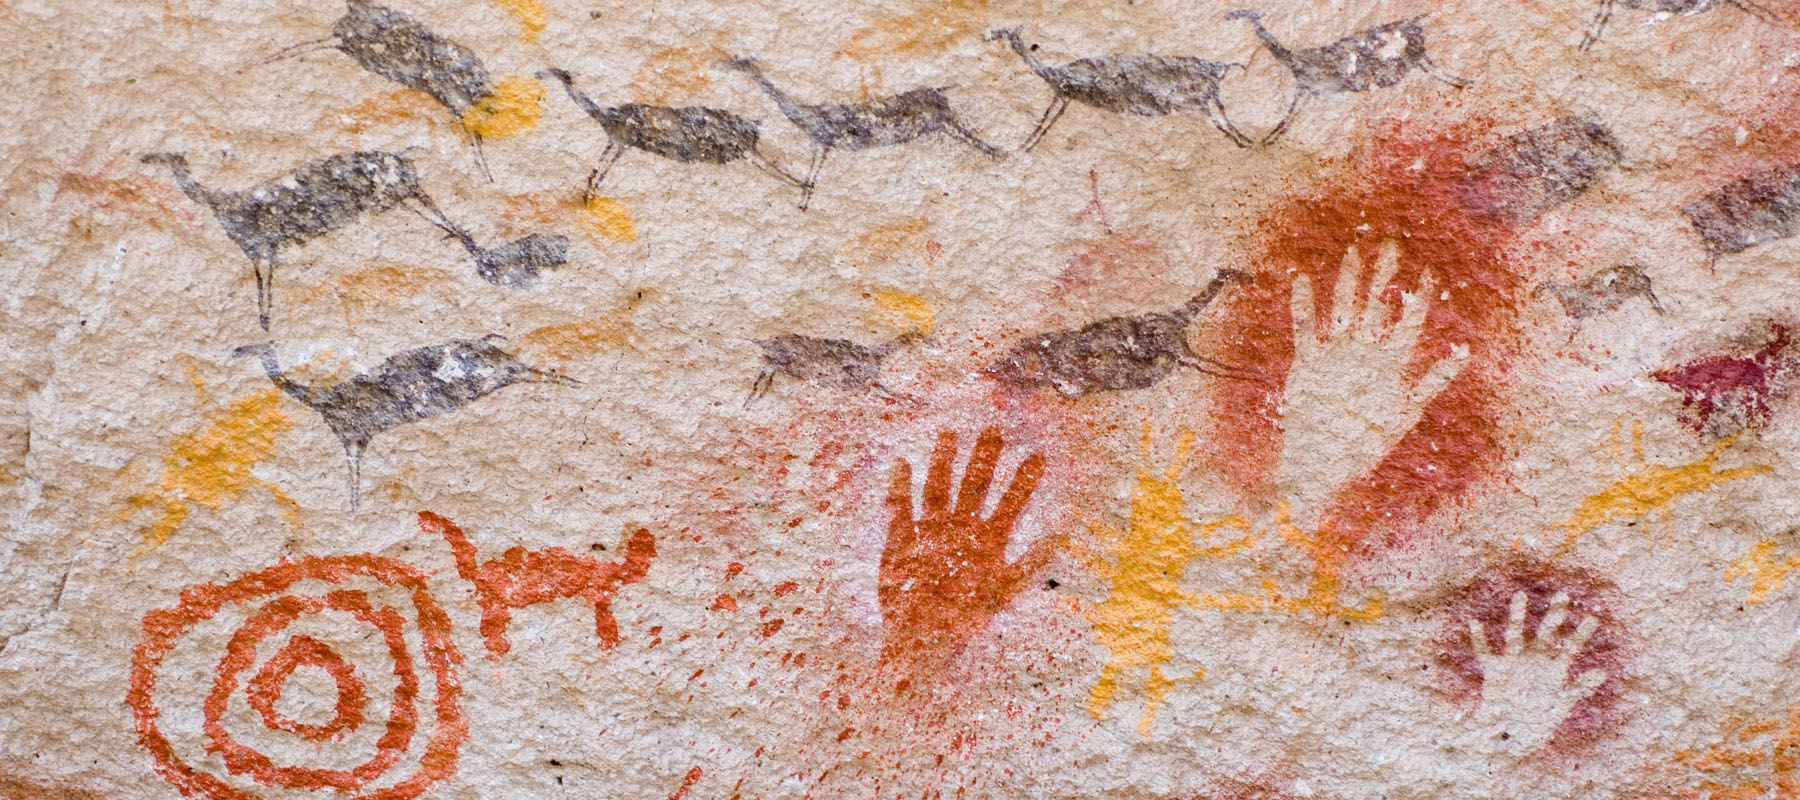 cave walls with drawings of handprints and animals